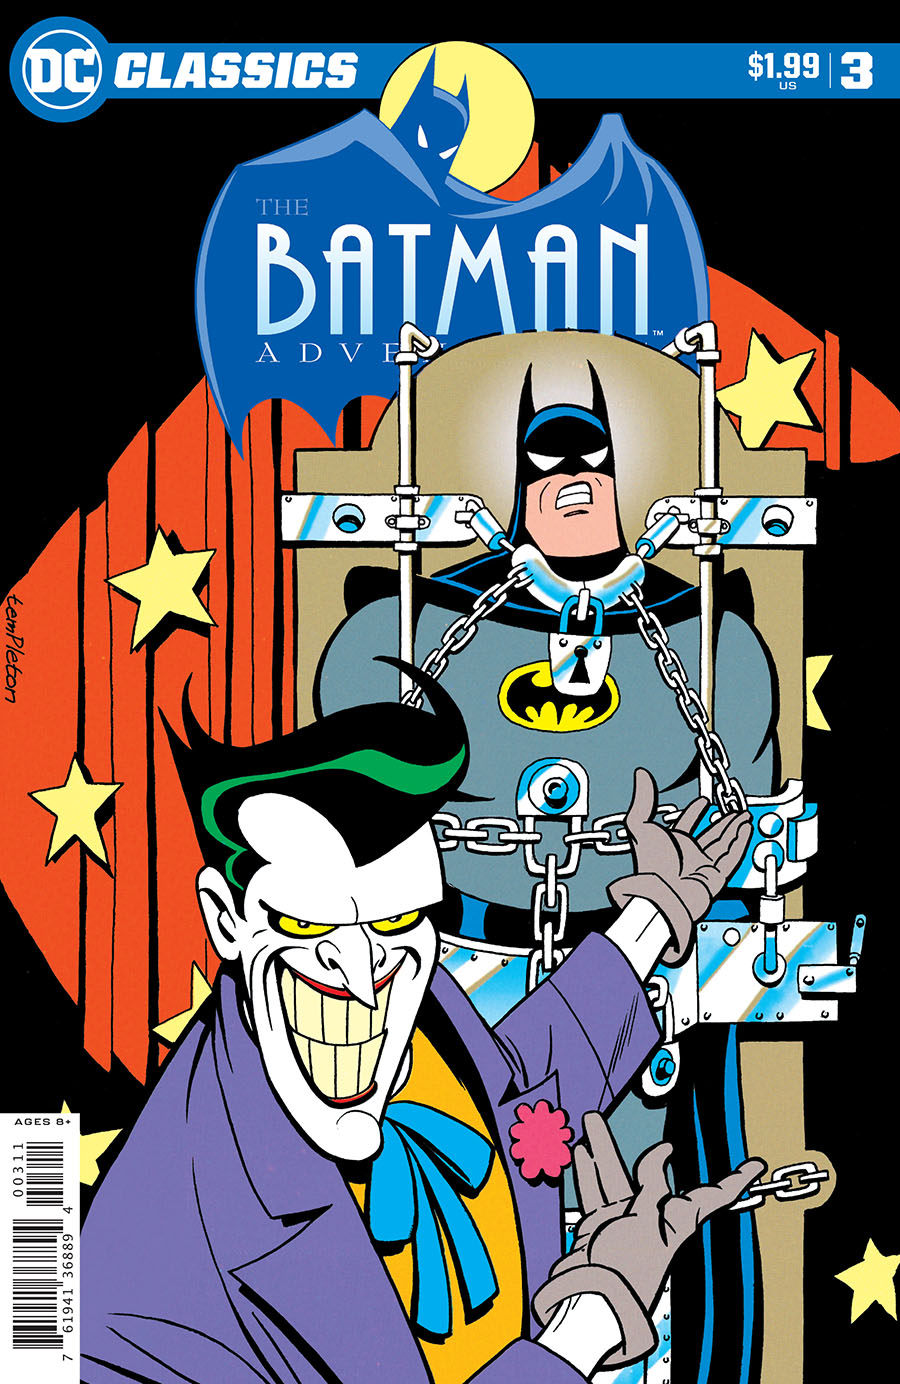 DC Classics: Batman Adventures #3 (2020)